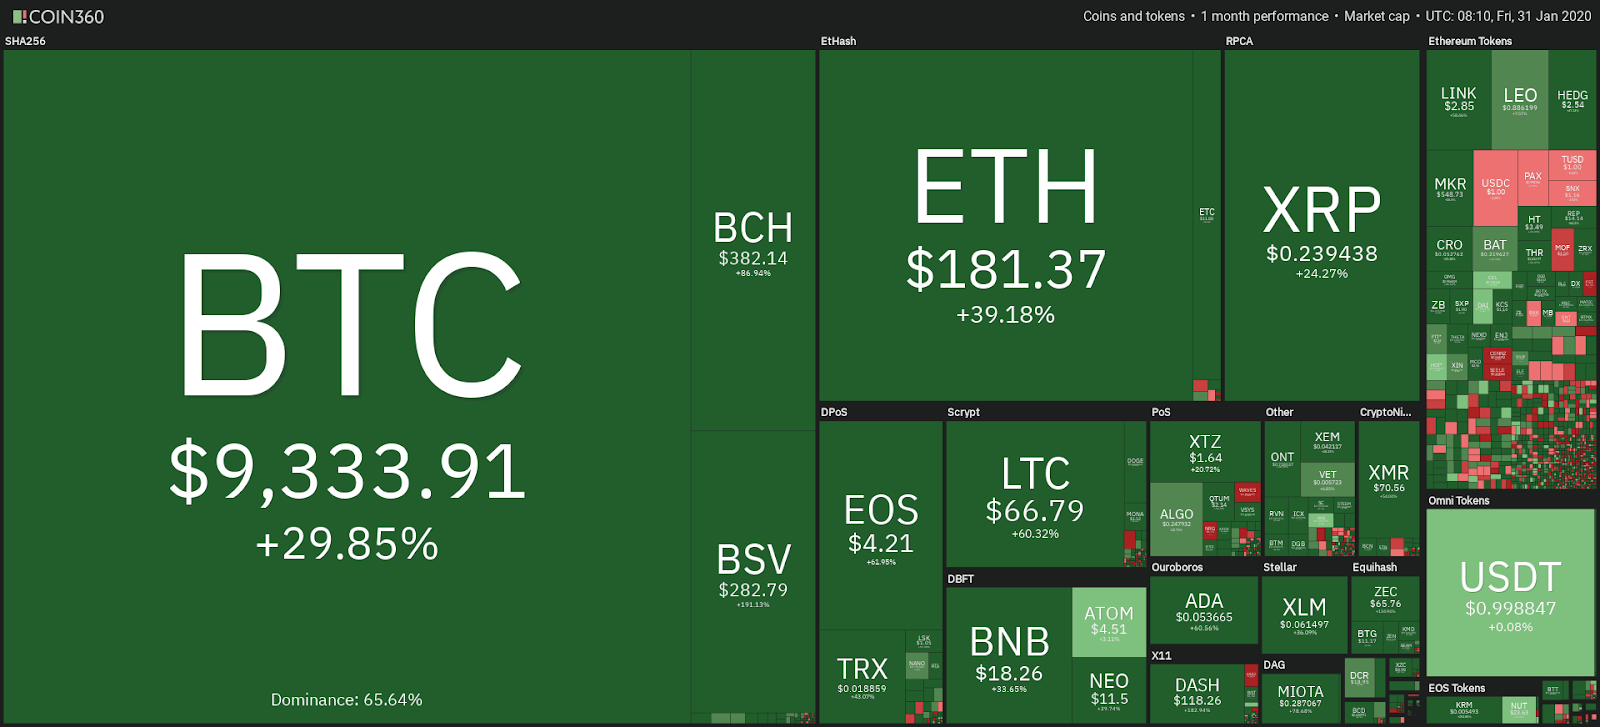 Cryptocurrency market monthly performance